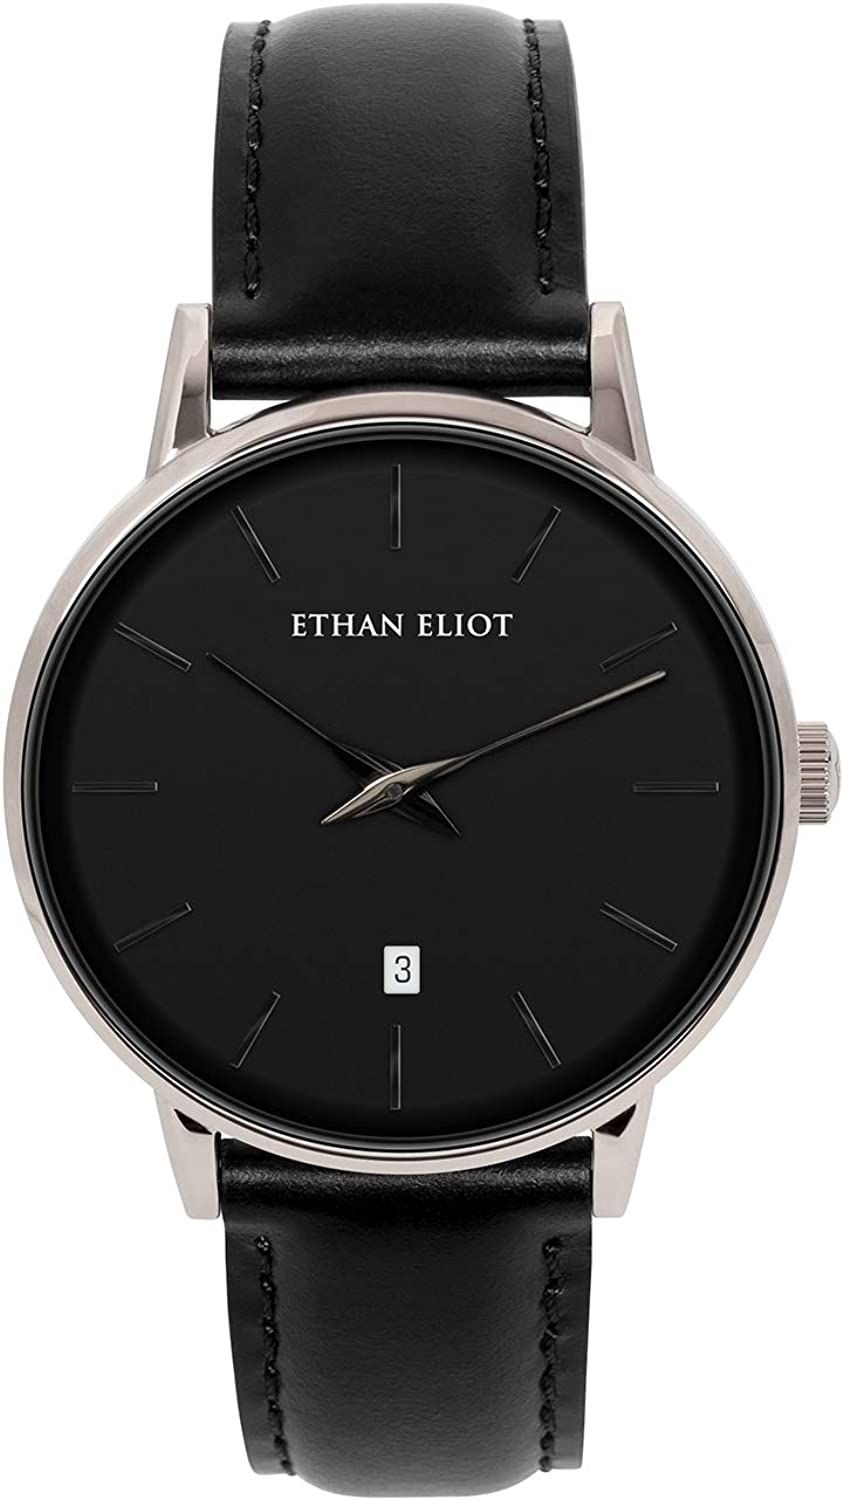 Ethan Eliot Classic Minimalist Men s Watch, Women s Watch, St. Johns 38mm Silver Watch for Men Watch for Women Unisex with Date, Black Face Leather Band, 5ATM